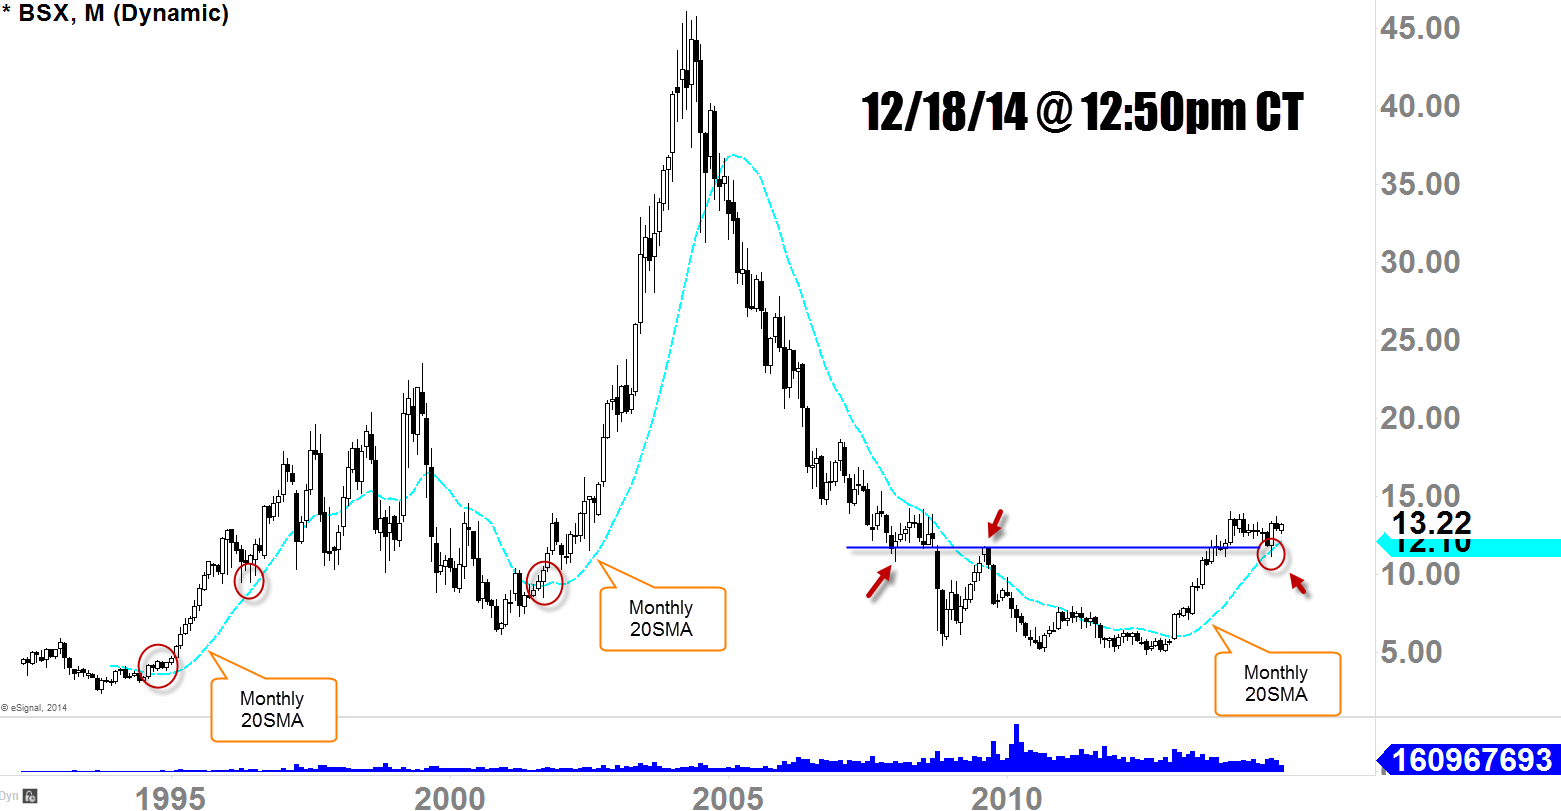 BSX Monthly Chart of December 2014